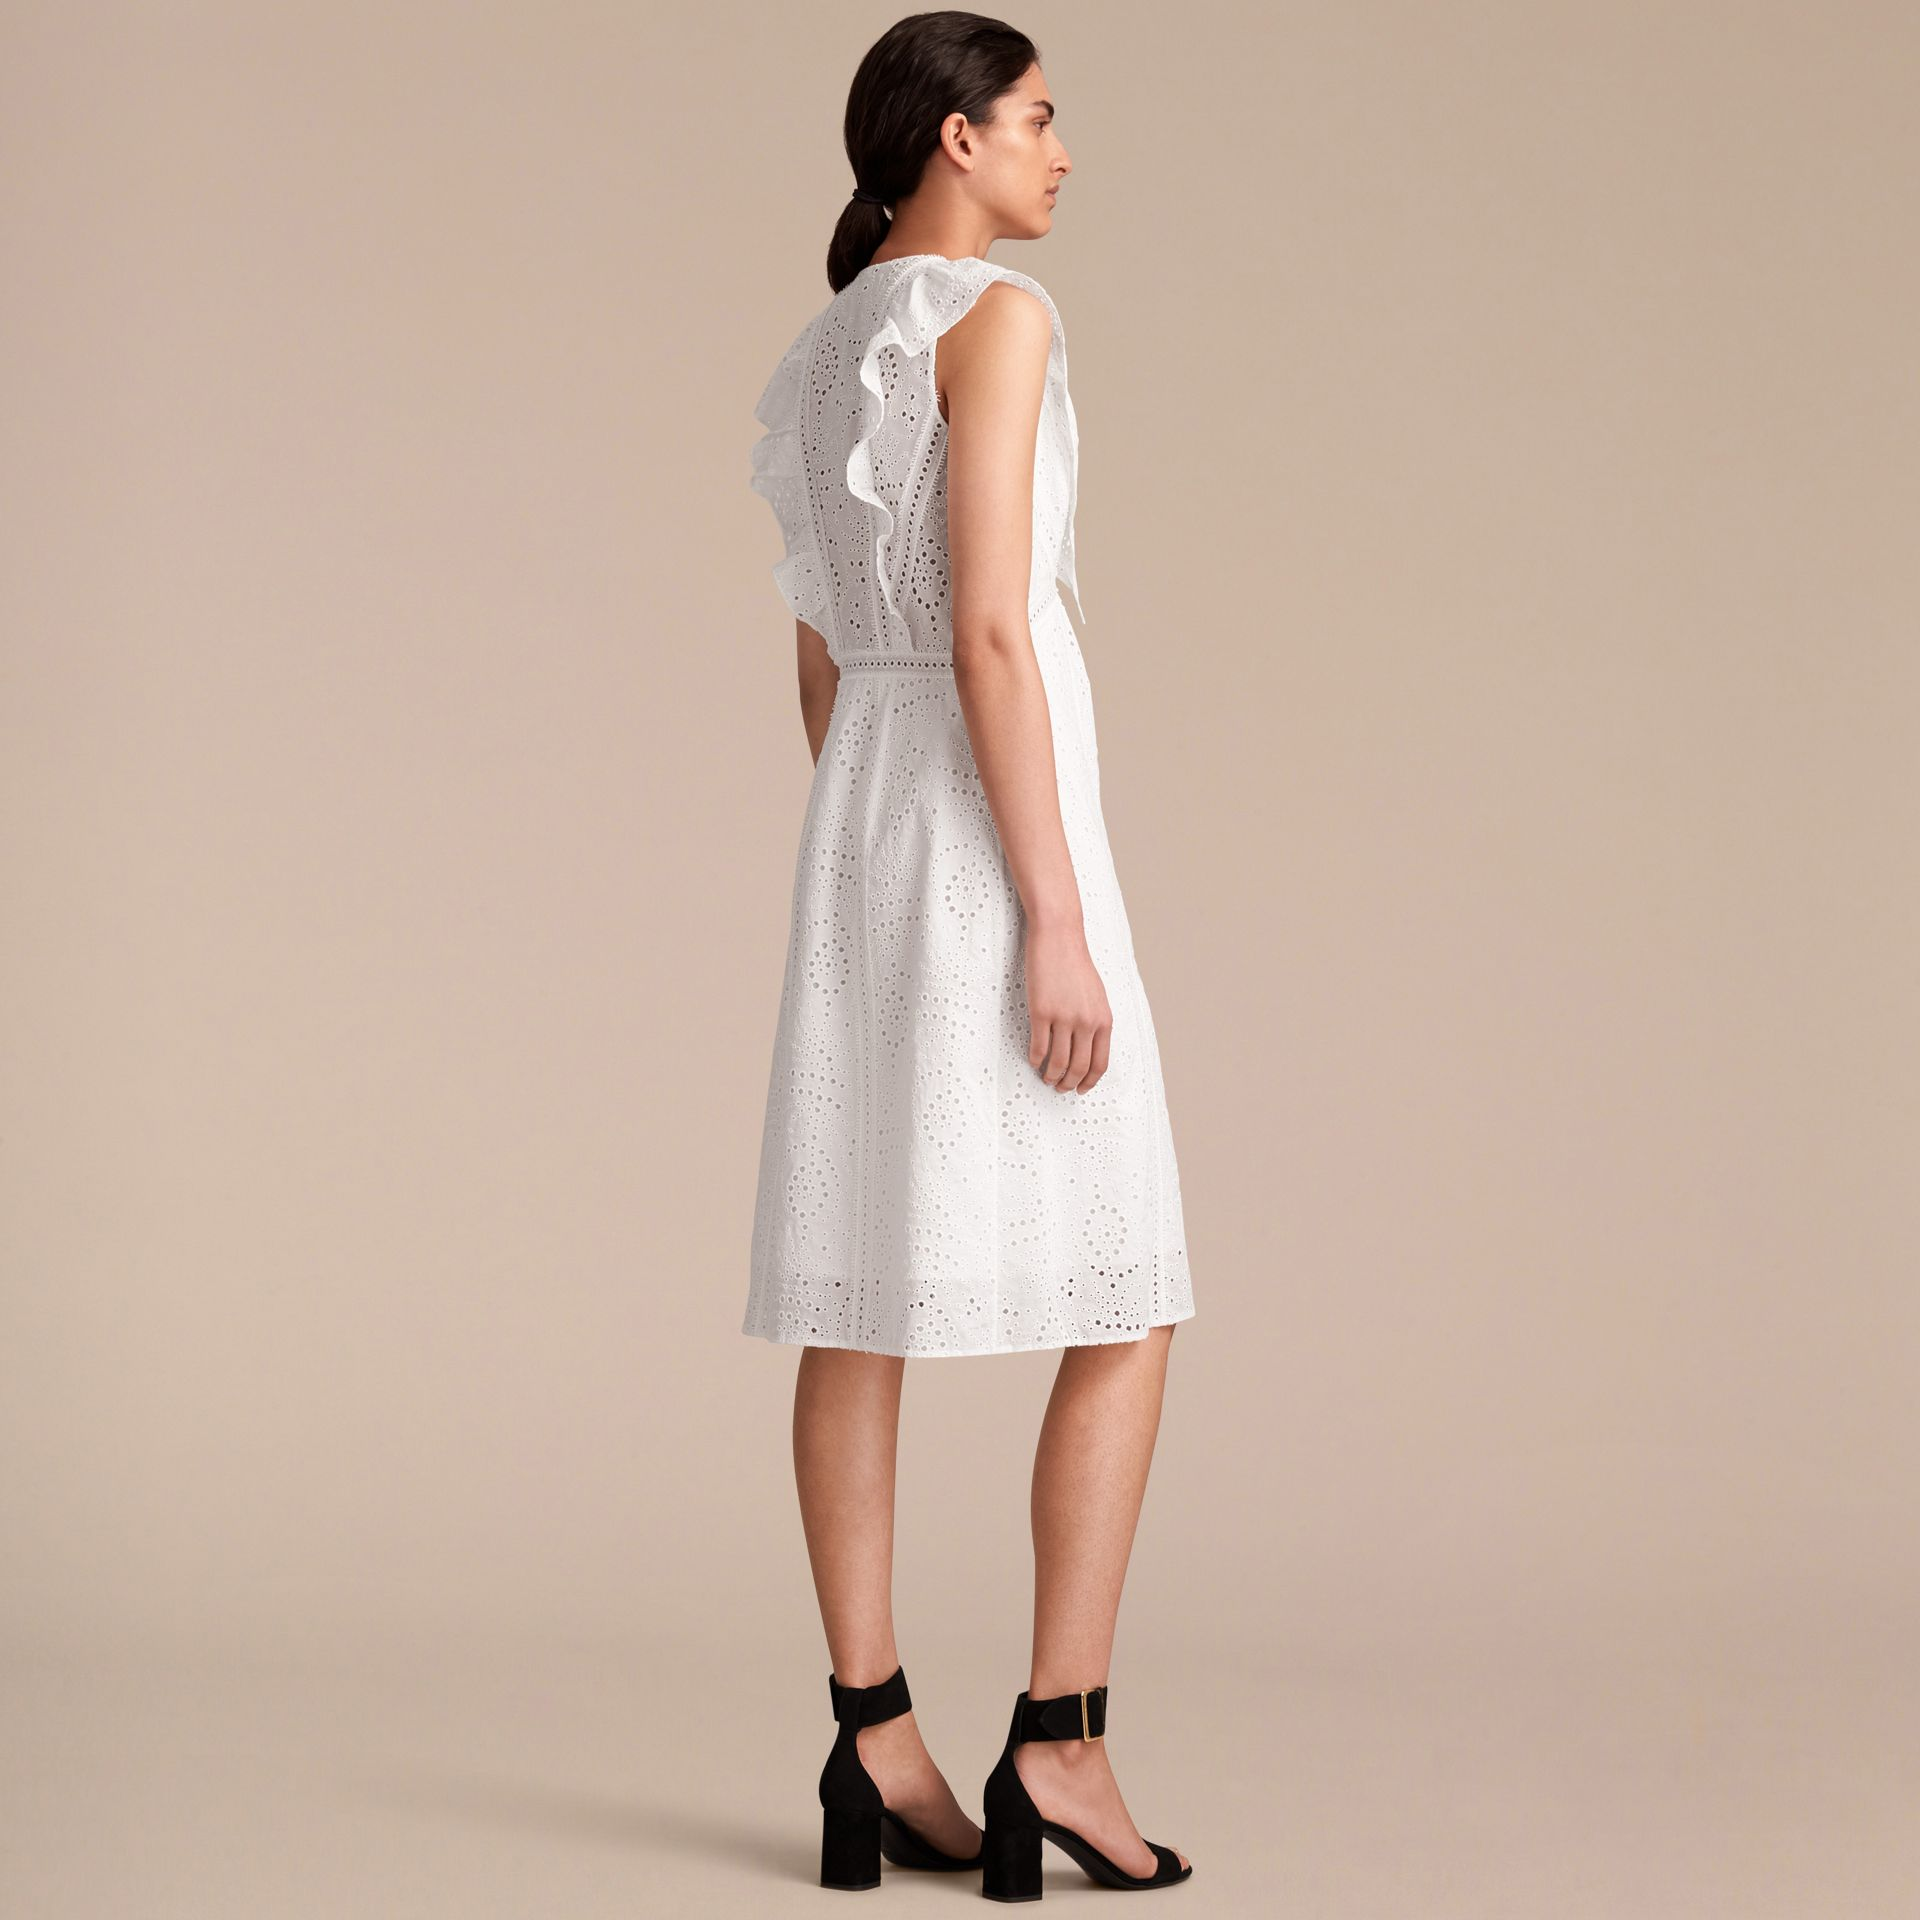 Sleeveless Broderie Anglaise Ruffle Detail Dress - gallery image 3